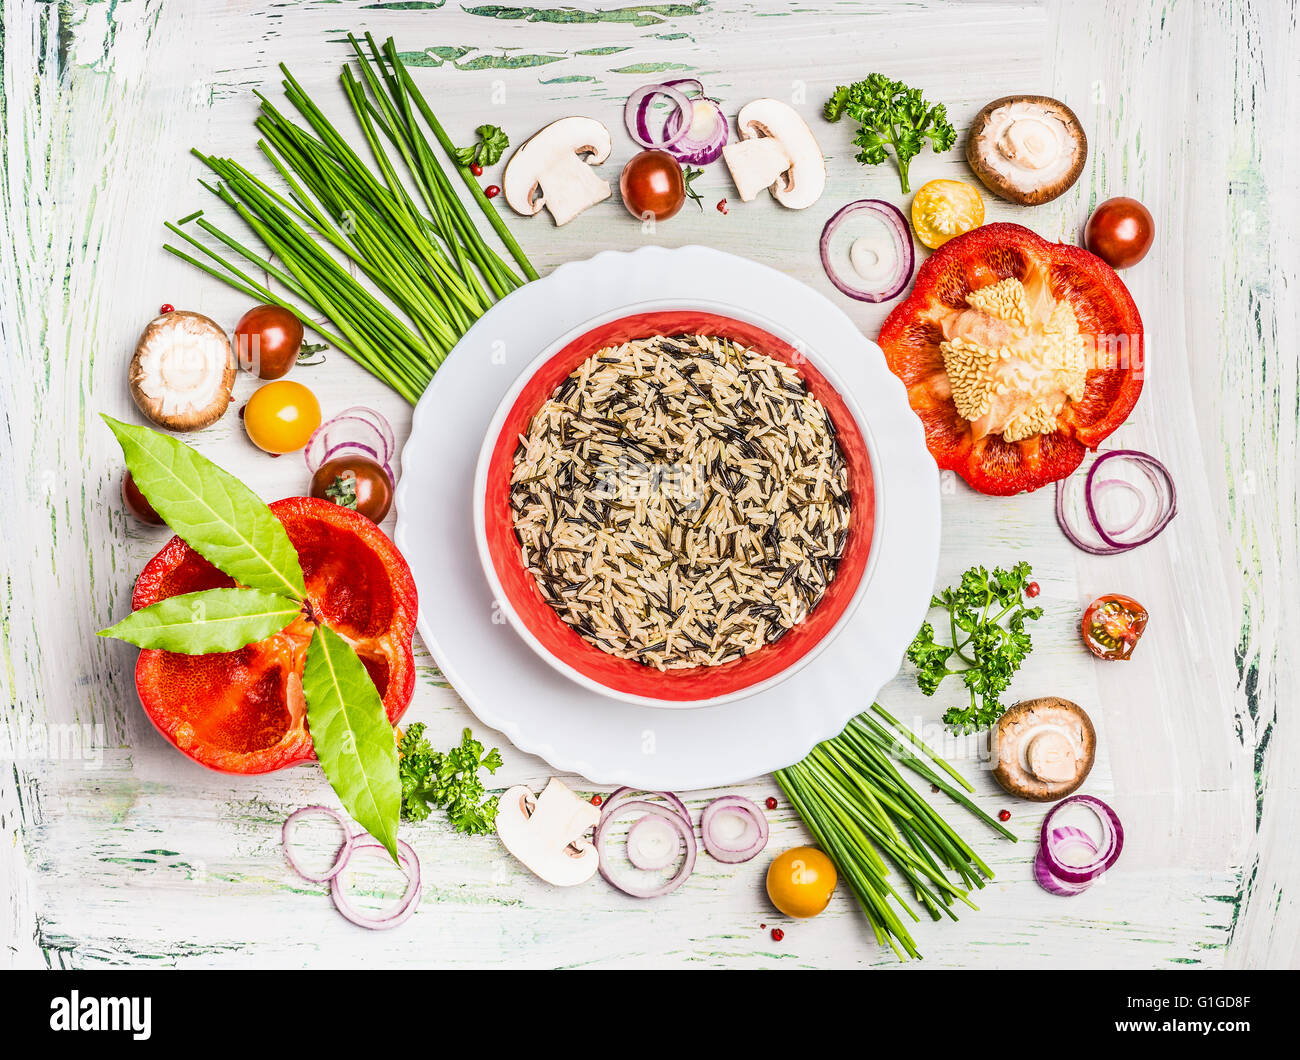 Wild rice dish and various vegetables and seasoning ingredients for tasty vegetarian cooking on light  rustic wooden - Stock Image